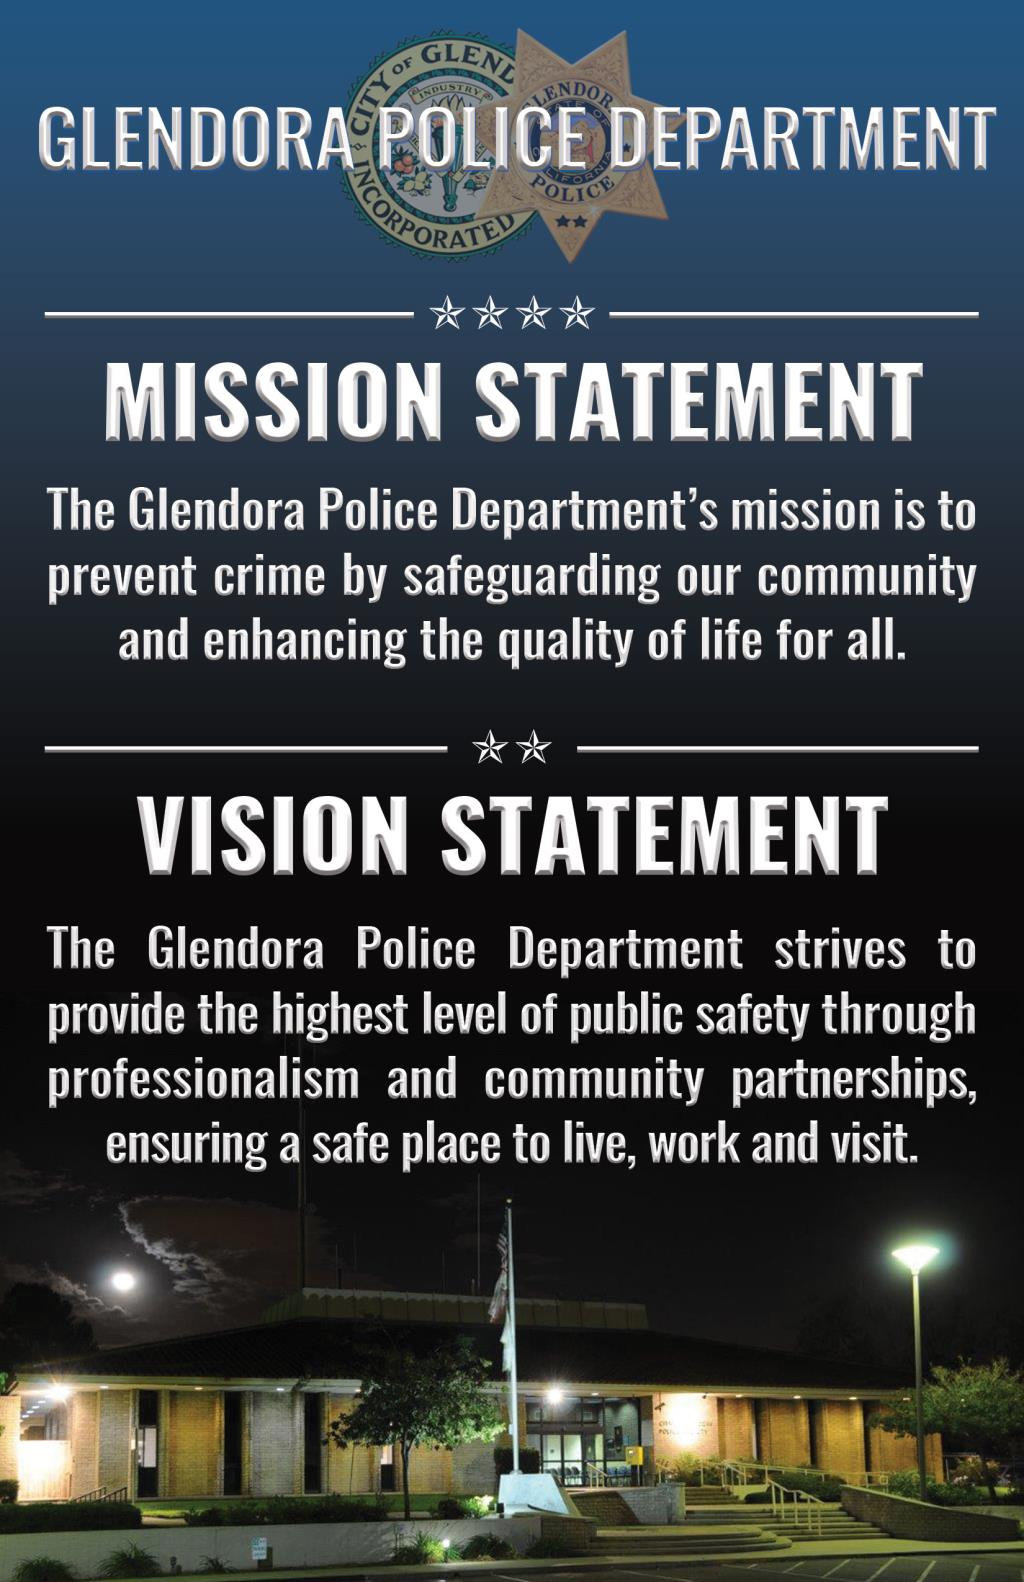 Glendora Police Department Mission. Providing outstanding personal service, safety, professionalism and respect, while maintaining the highest level of integrity in partnership with the community. Core Values.  Proactive Respectful Integrity Dedication Excellence.